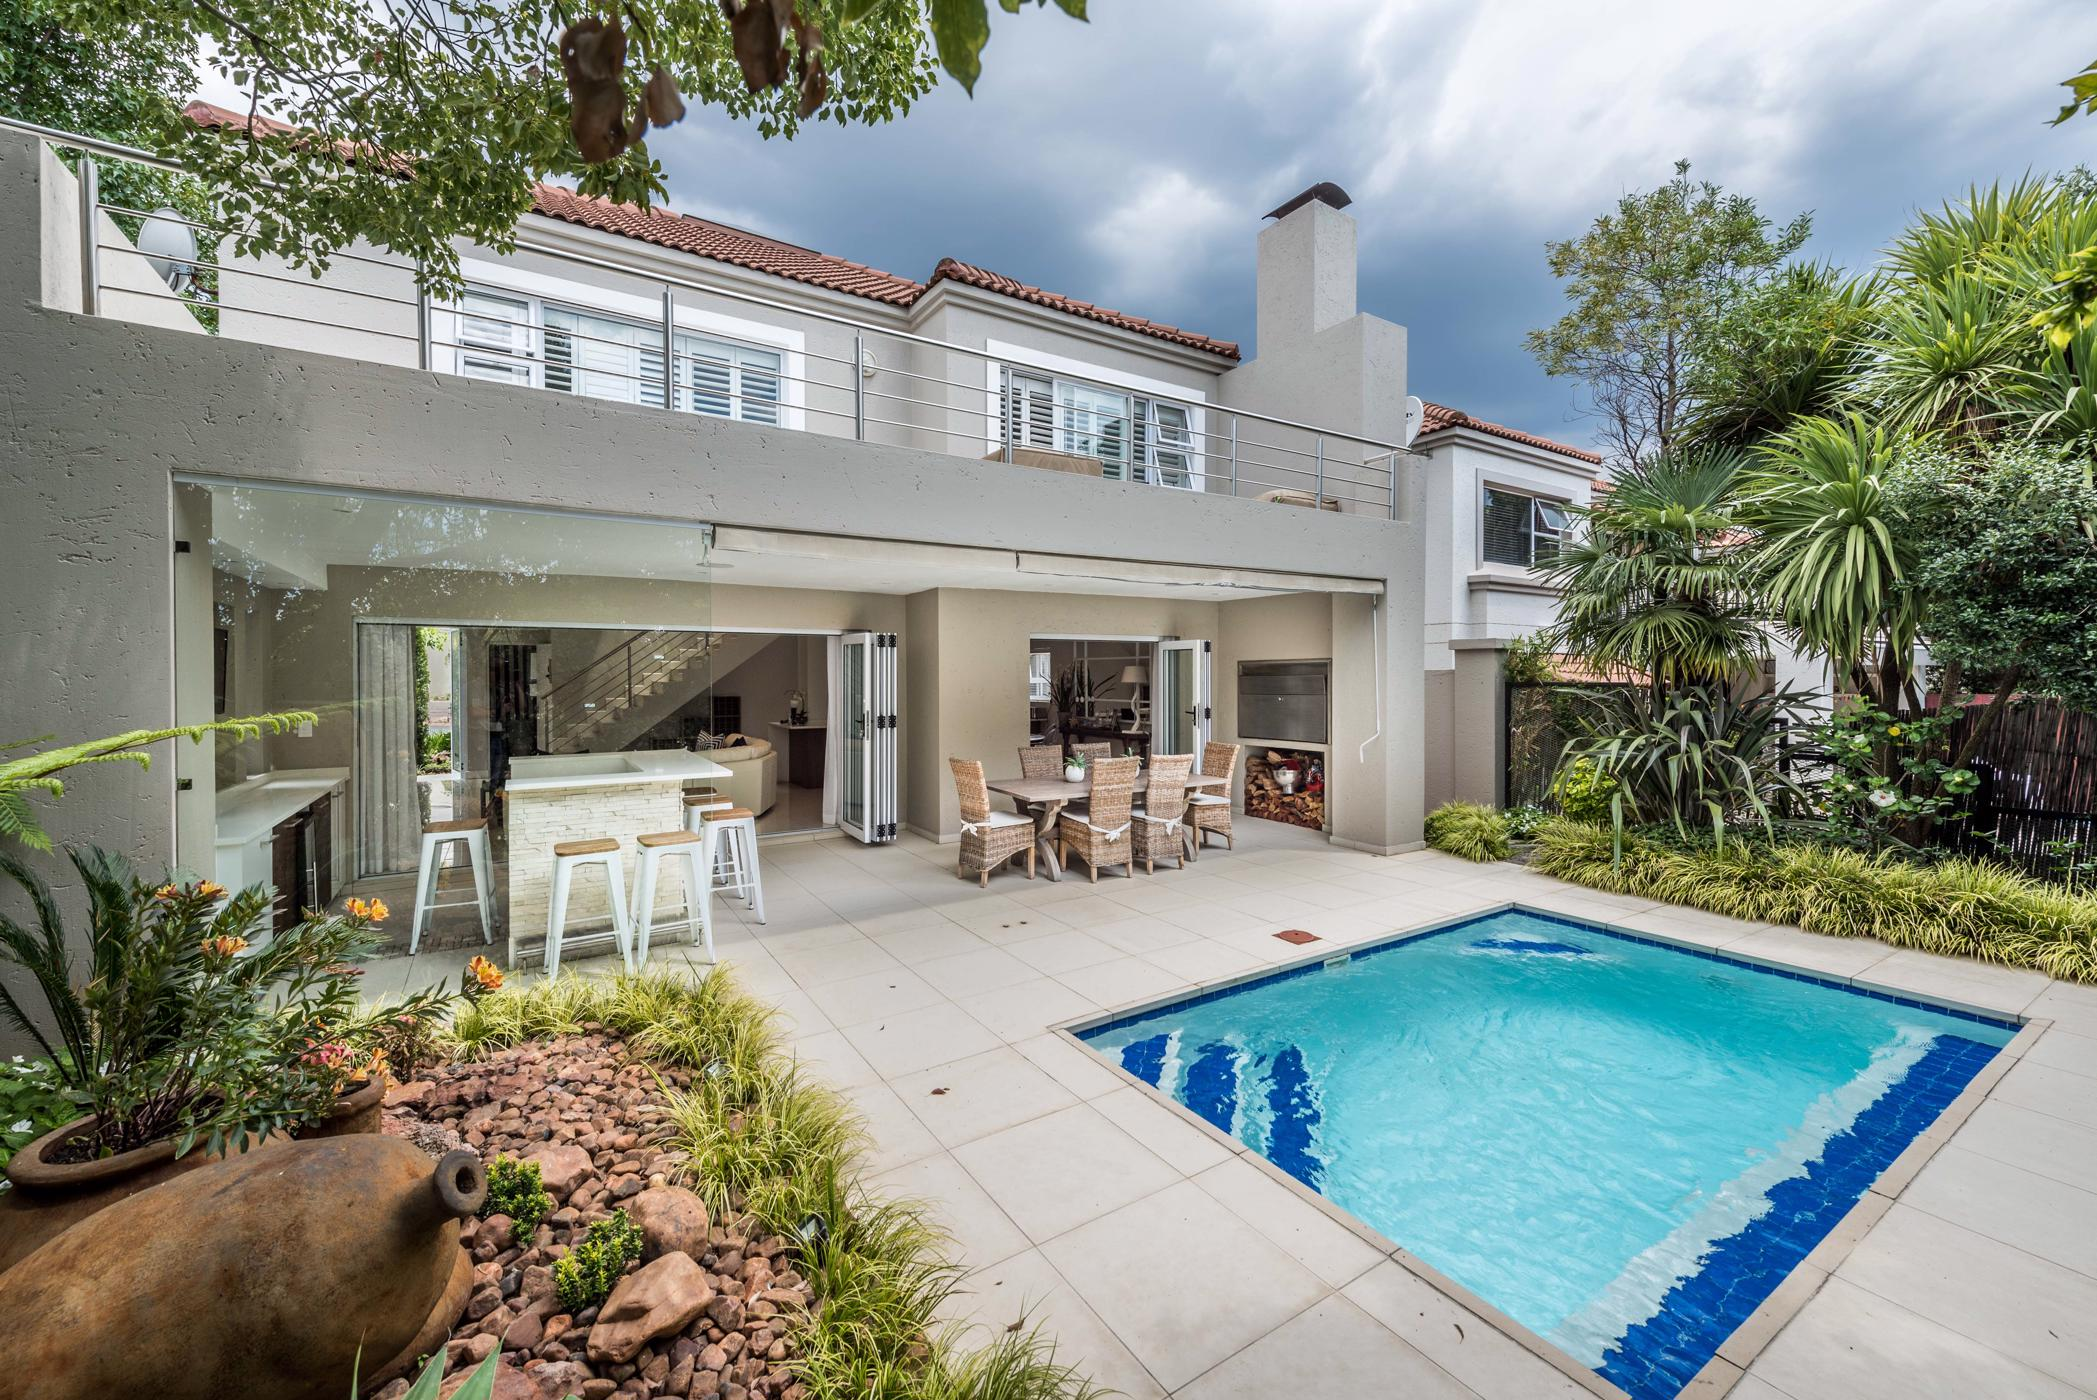 https://listing.pamgolding.co.za/images/properties/201904/259200/H/259200_H_3.jpg